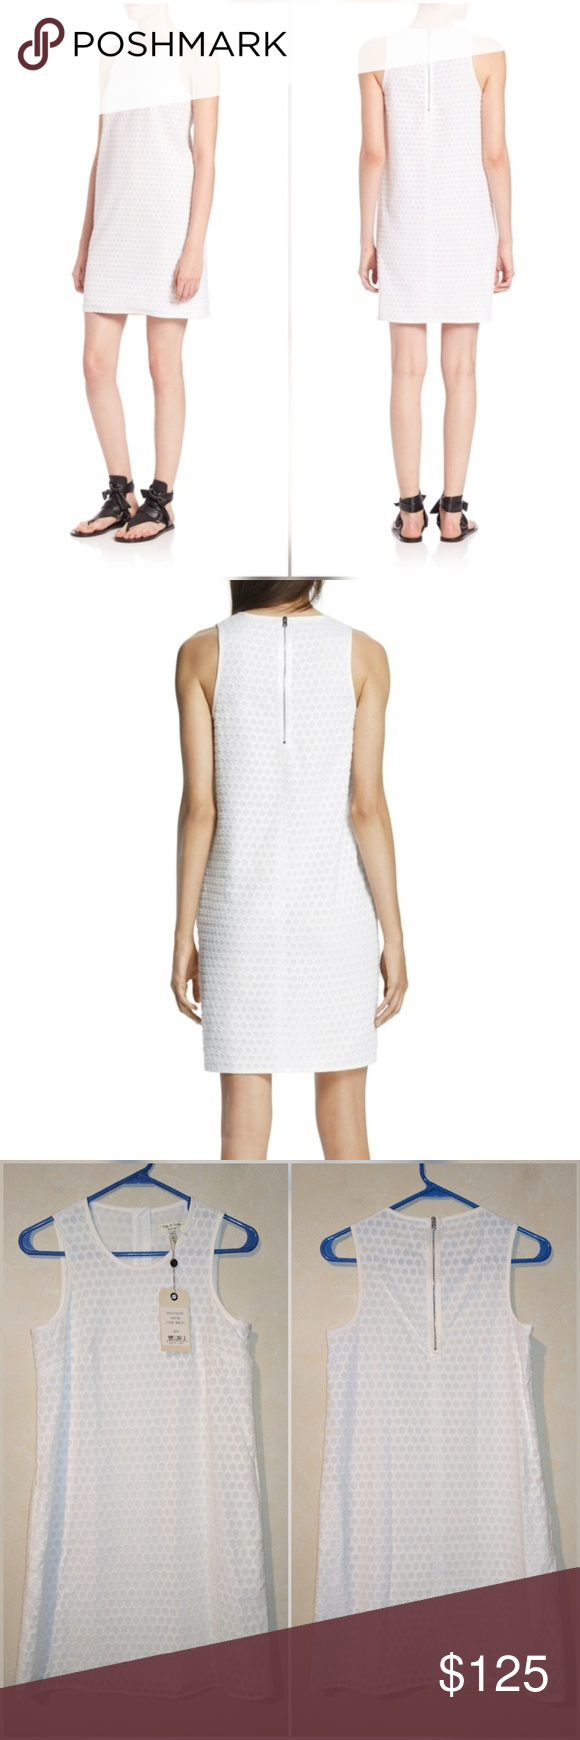 "Rag & Bone Evie Honeycomb Dress in White New with tags. Perfect condition. No trades. Lined. Zip closure. Hidden size pockets. Approximate measurements Chest flat across 16"" Length 33.75"" rag & bone Dresses"